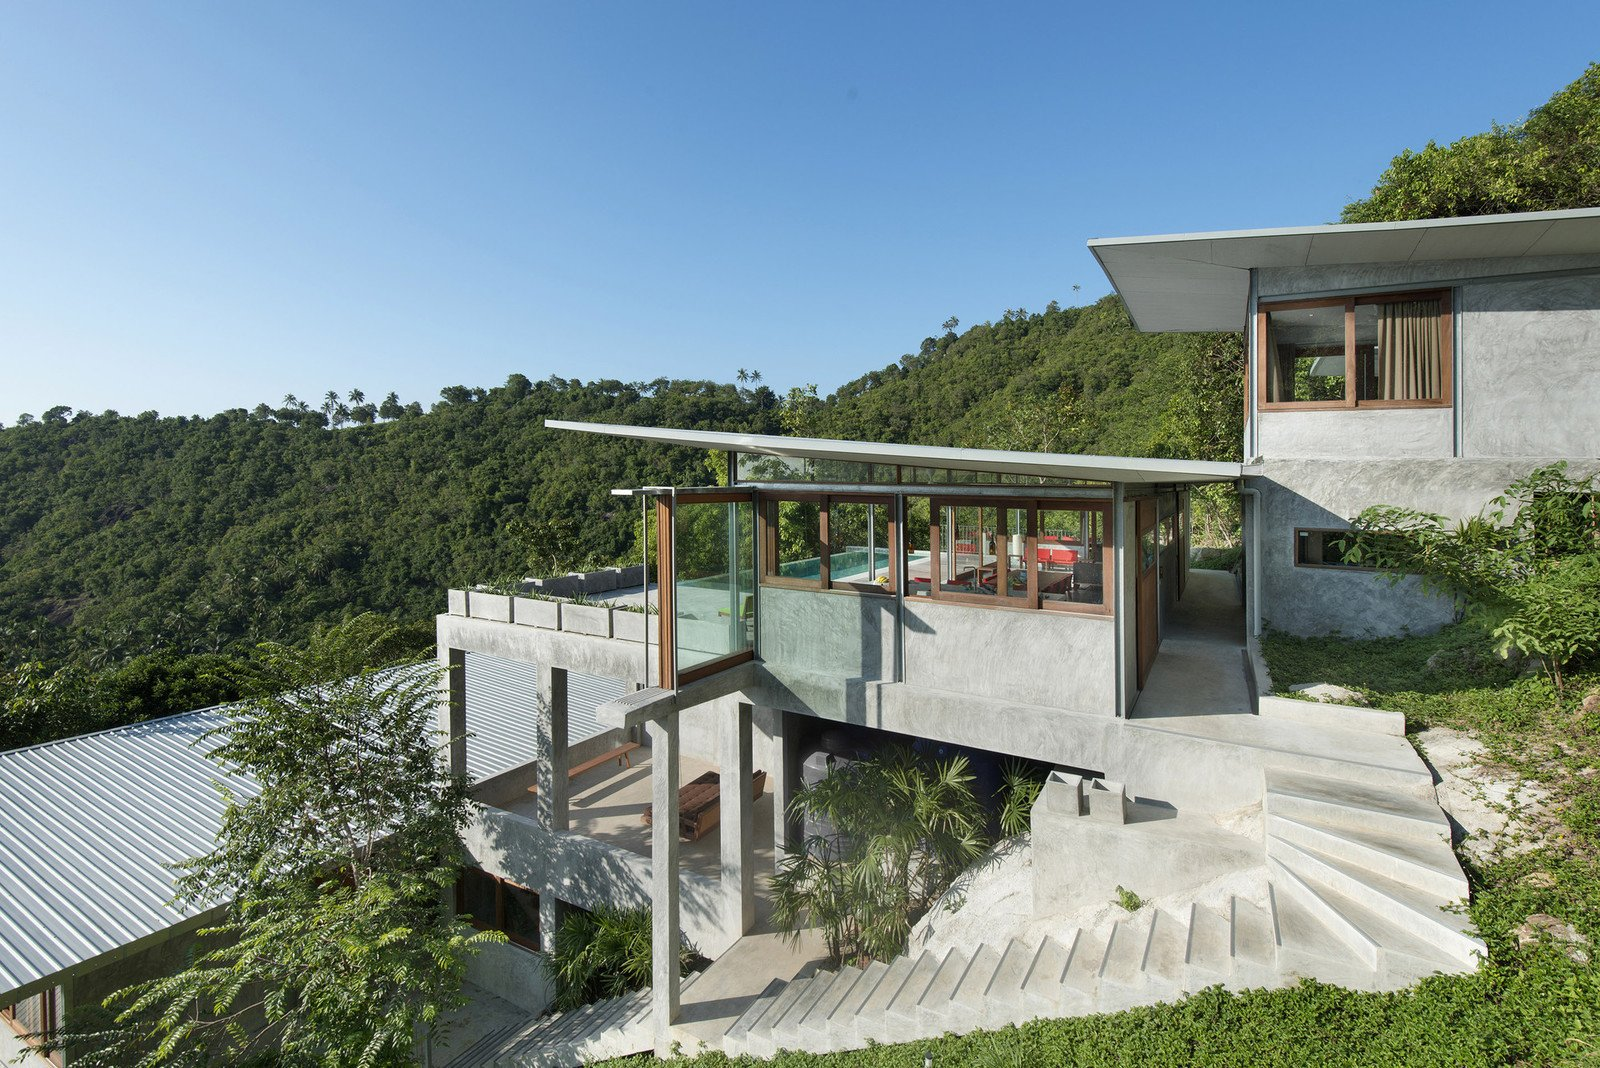 Tagged: Sofa, Bed, Trees, Metal, Side Yard, Cooktops, Freestanding, Enclosed, One Piece, Outdoor, Slope, Shrubs, Walkways, and Grass.  Best Outdoor One Piece Cooktops Photos from Take a Trip to This Photographer-Designed Concrete Home in Thailand